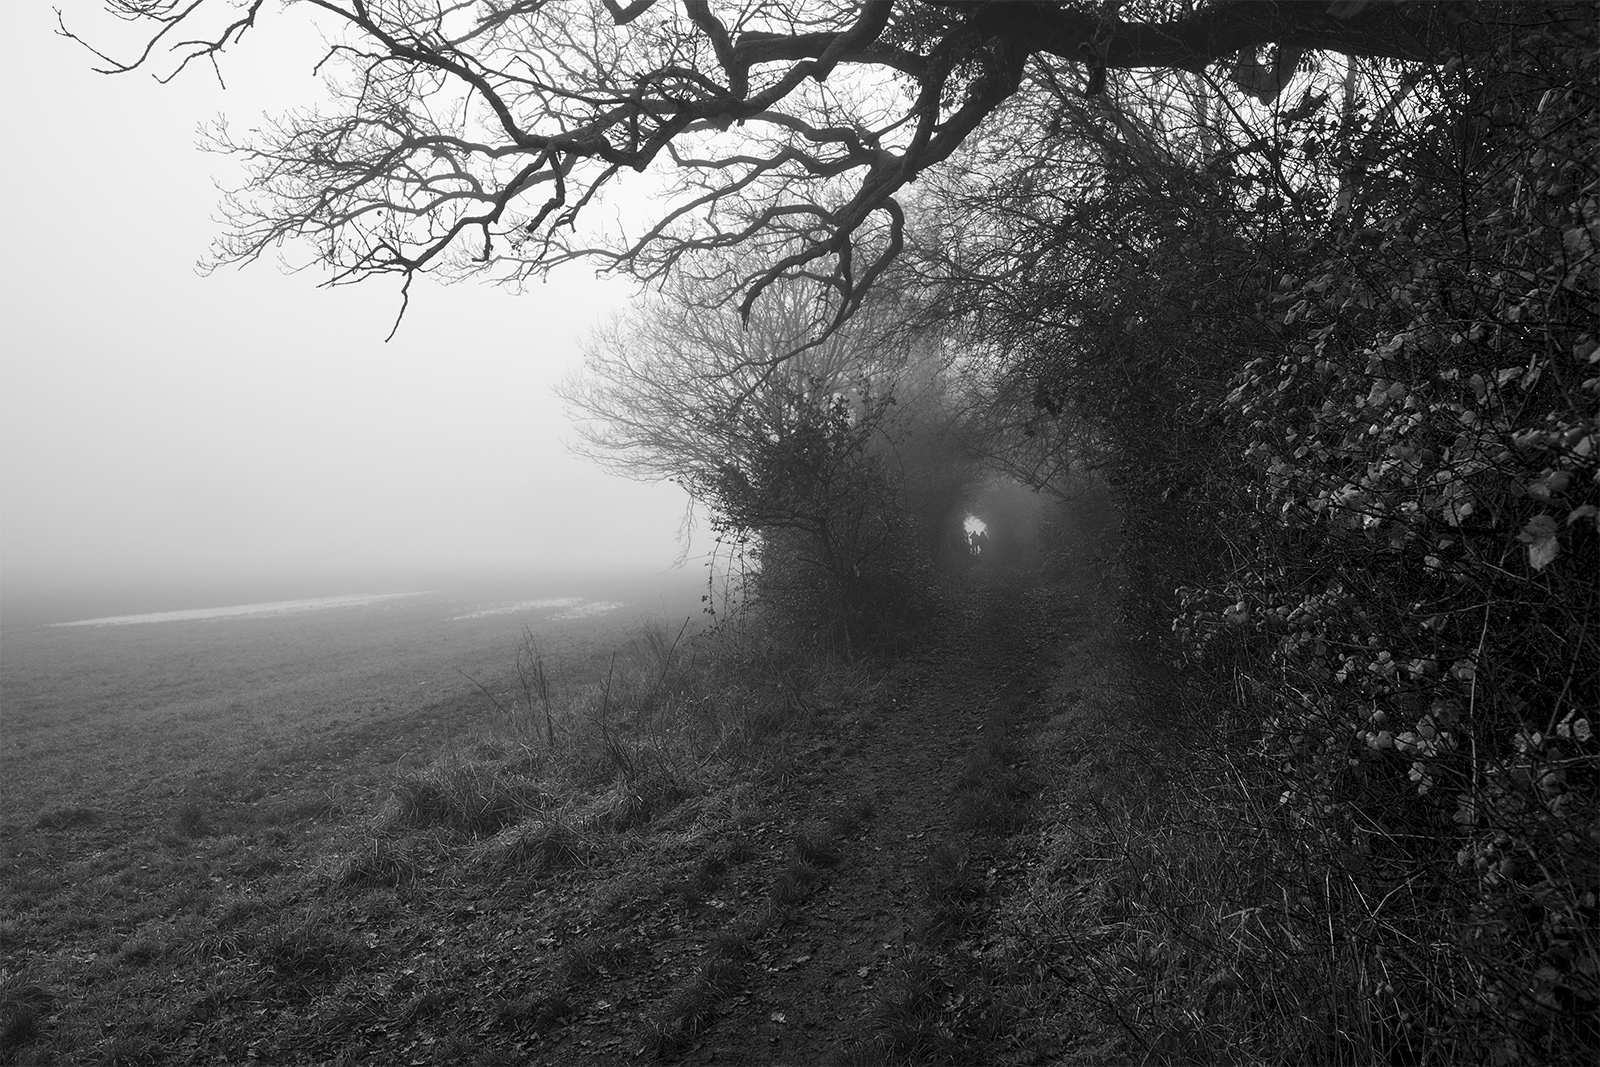 Footpath next to field leading into tunnel through hedgerow with distant figures silhouetted in the fog, Stratfield Mortimer Berkshire UK black and white landscape composition nature rural countryside documentary photograph ©P. Maton 2018 eyeteeth.net